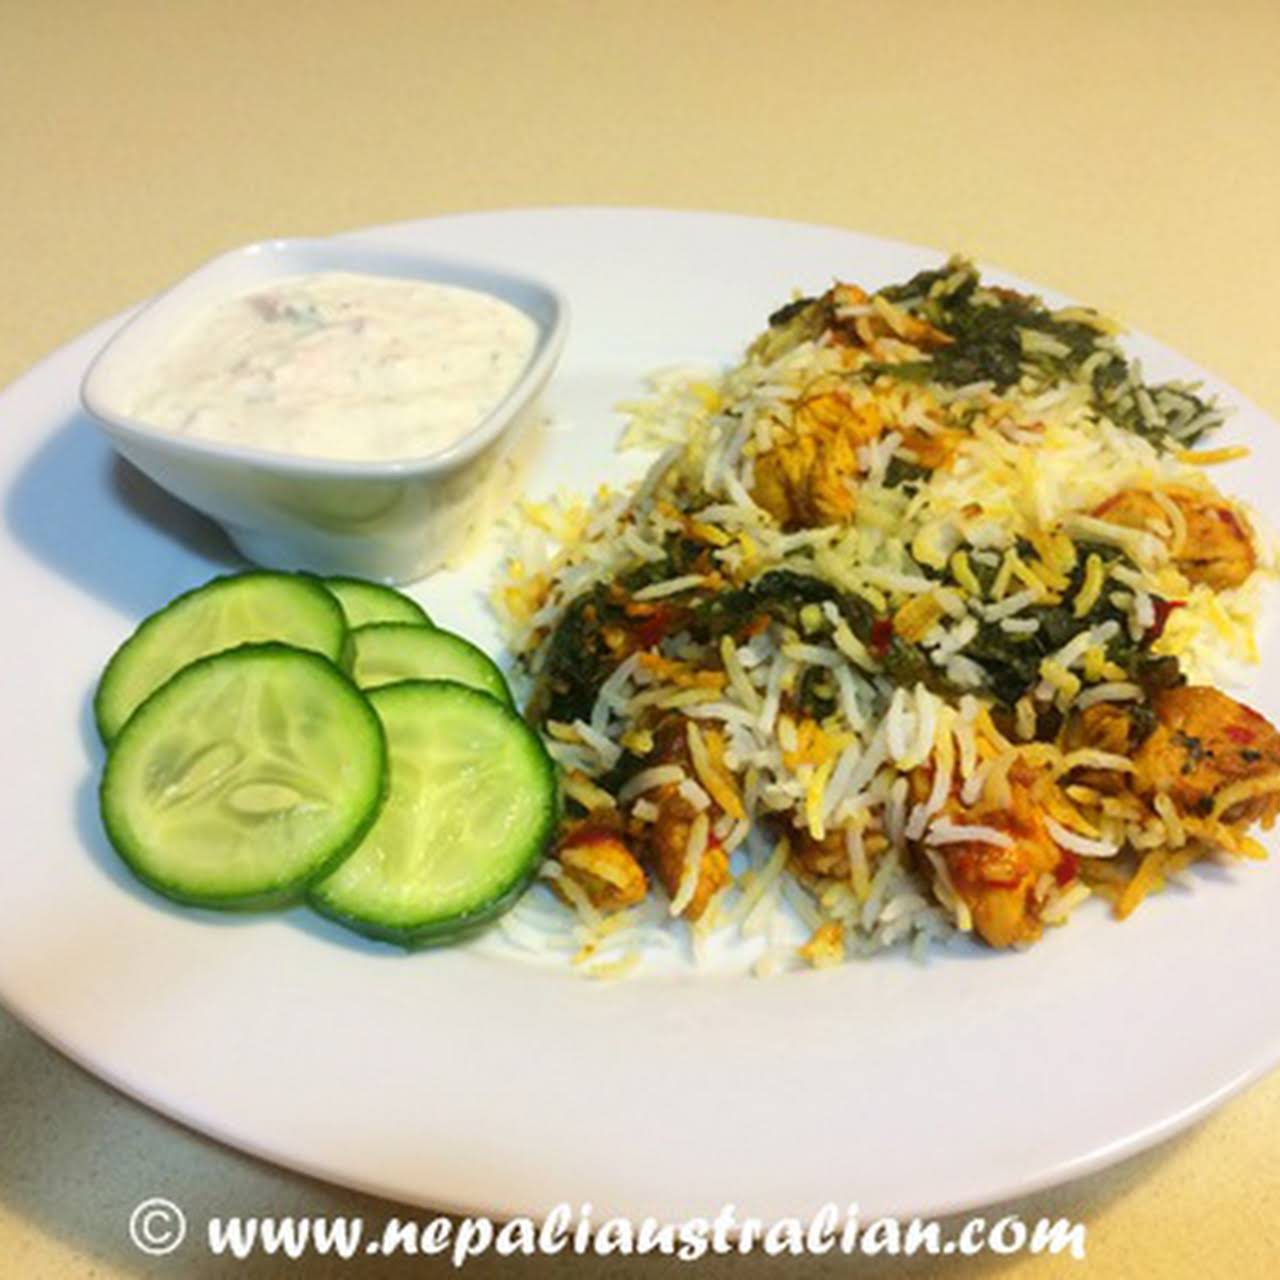 Jamie Oliver inspired chicken and spinach oven baked biryani